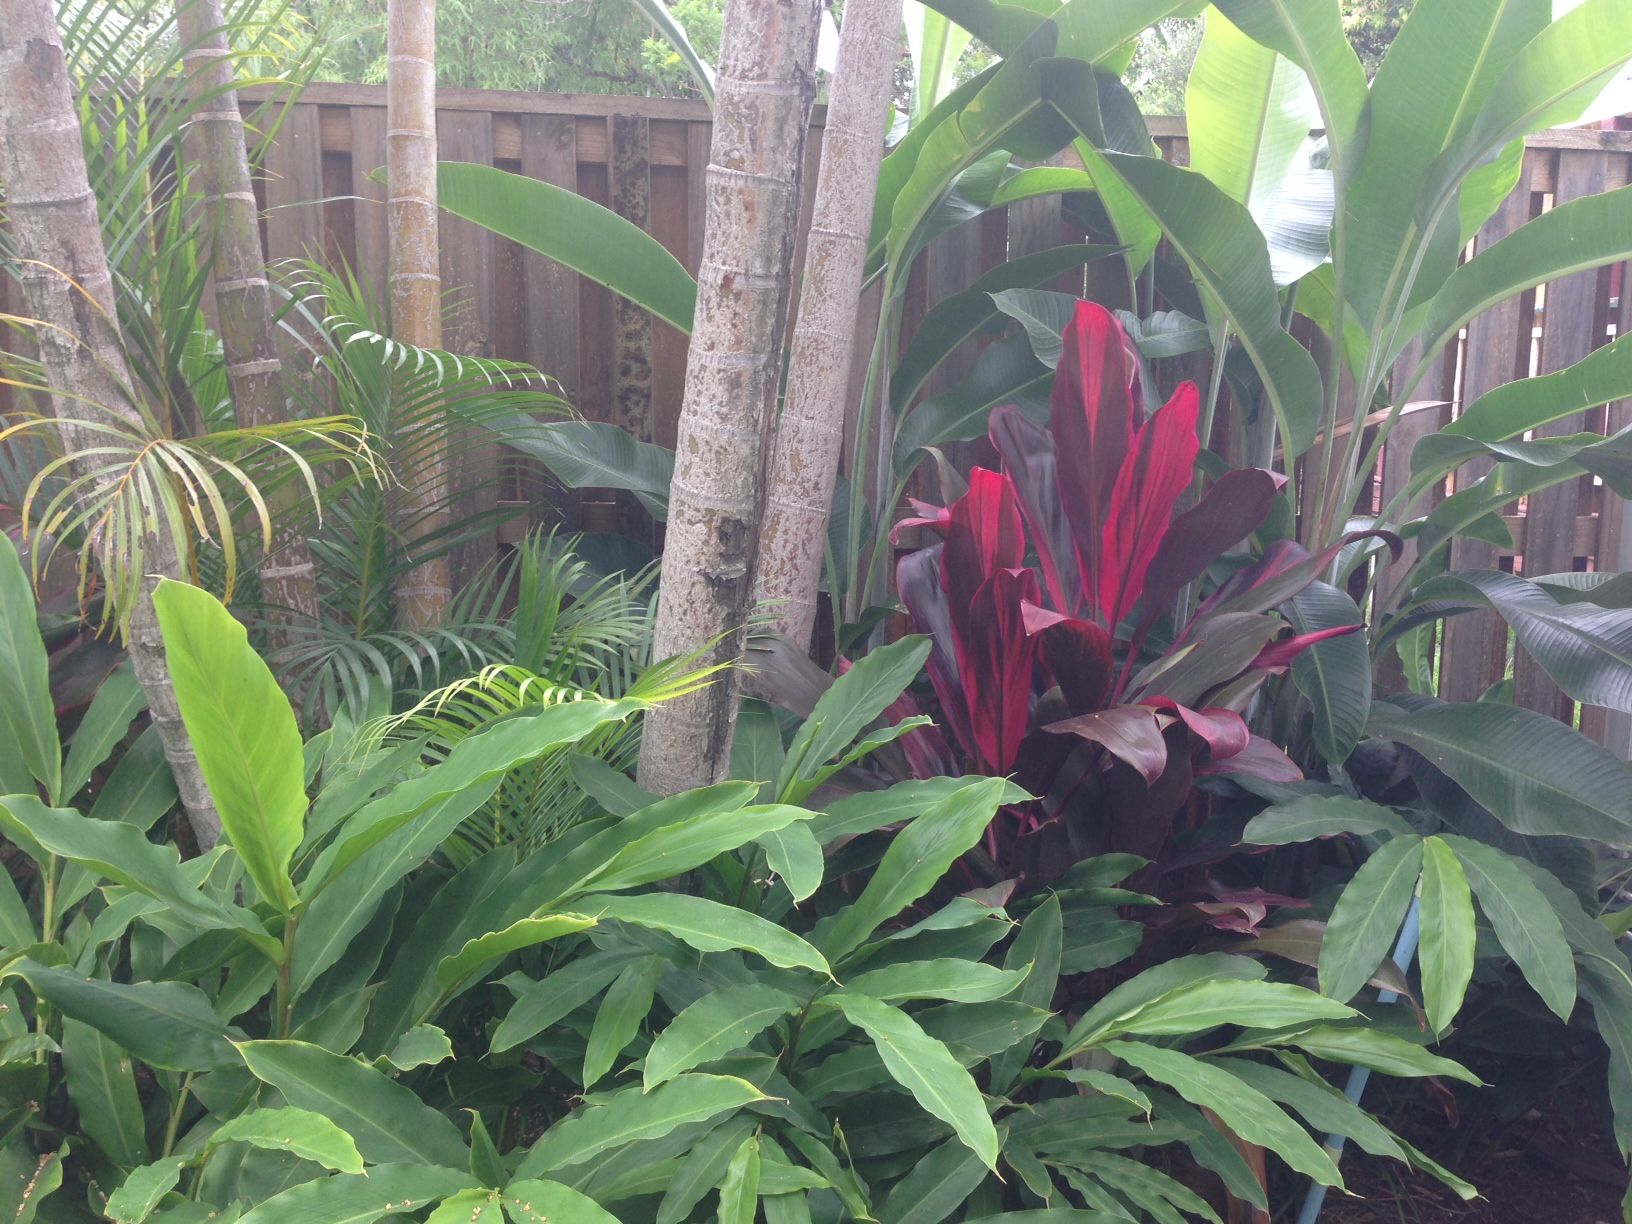 Garden Plants Native Gardens Planting Under Golden Cane Palms Cardamon Heliconia Cordyline Rubra For An Occasional Punch